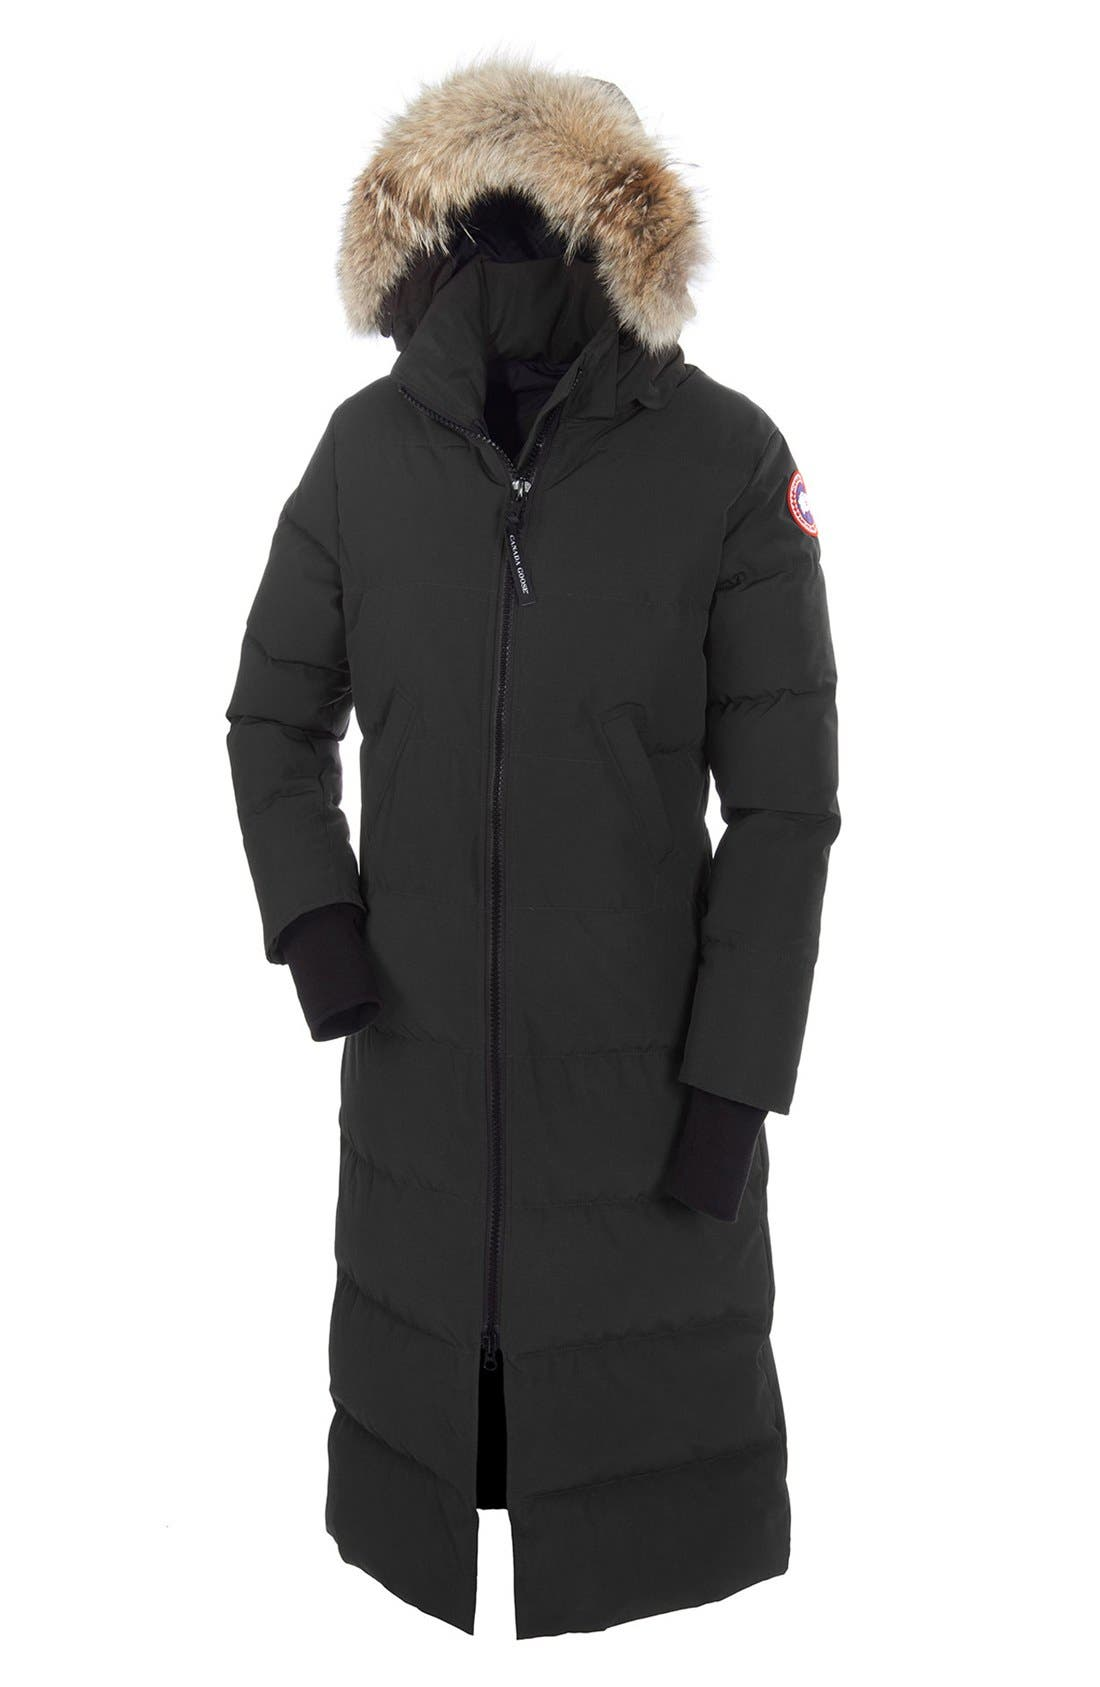 buy cheap canada goose jackets